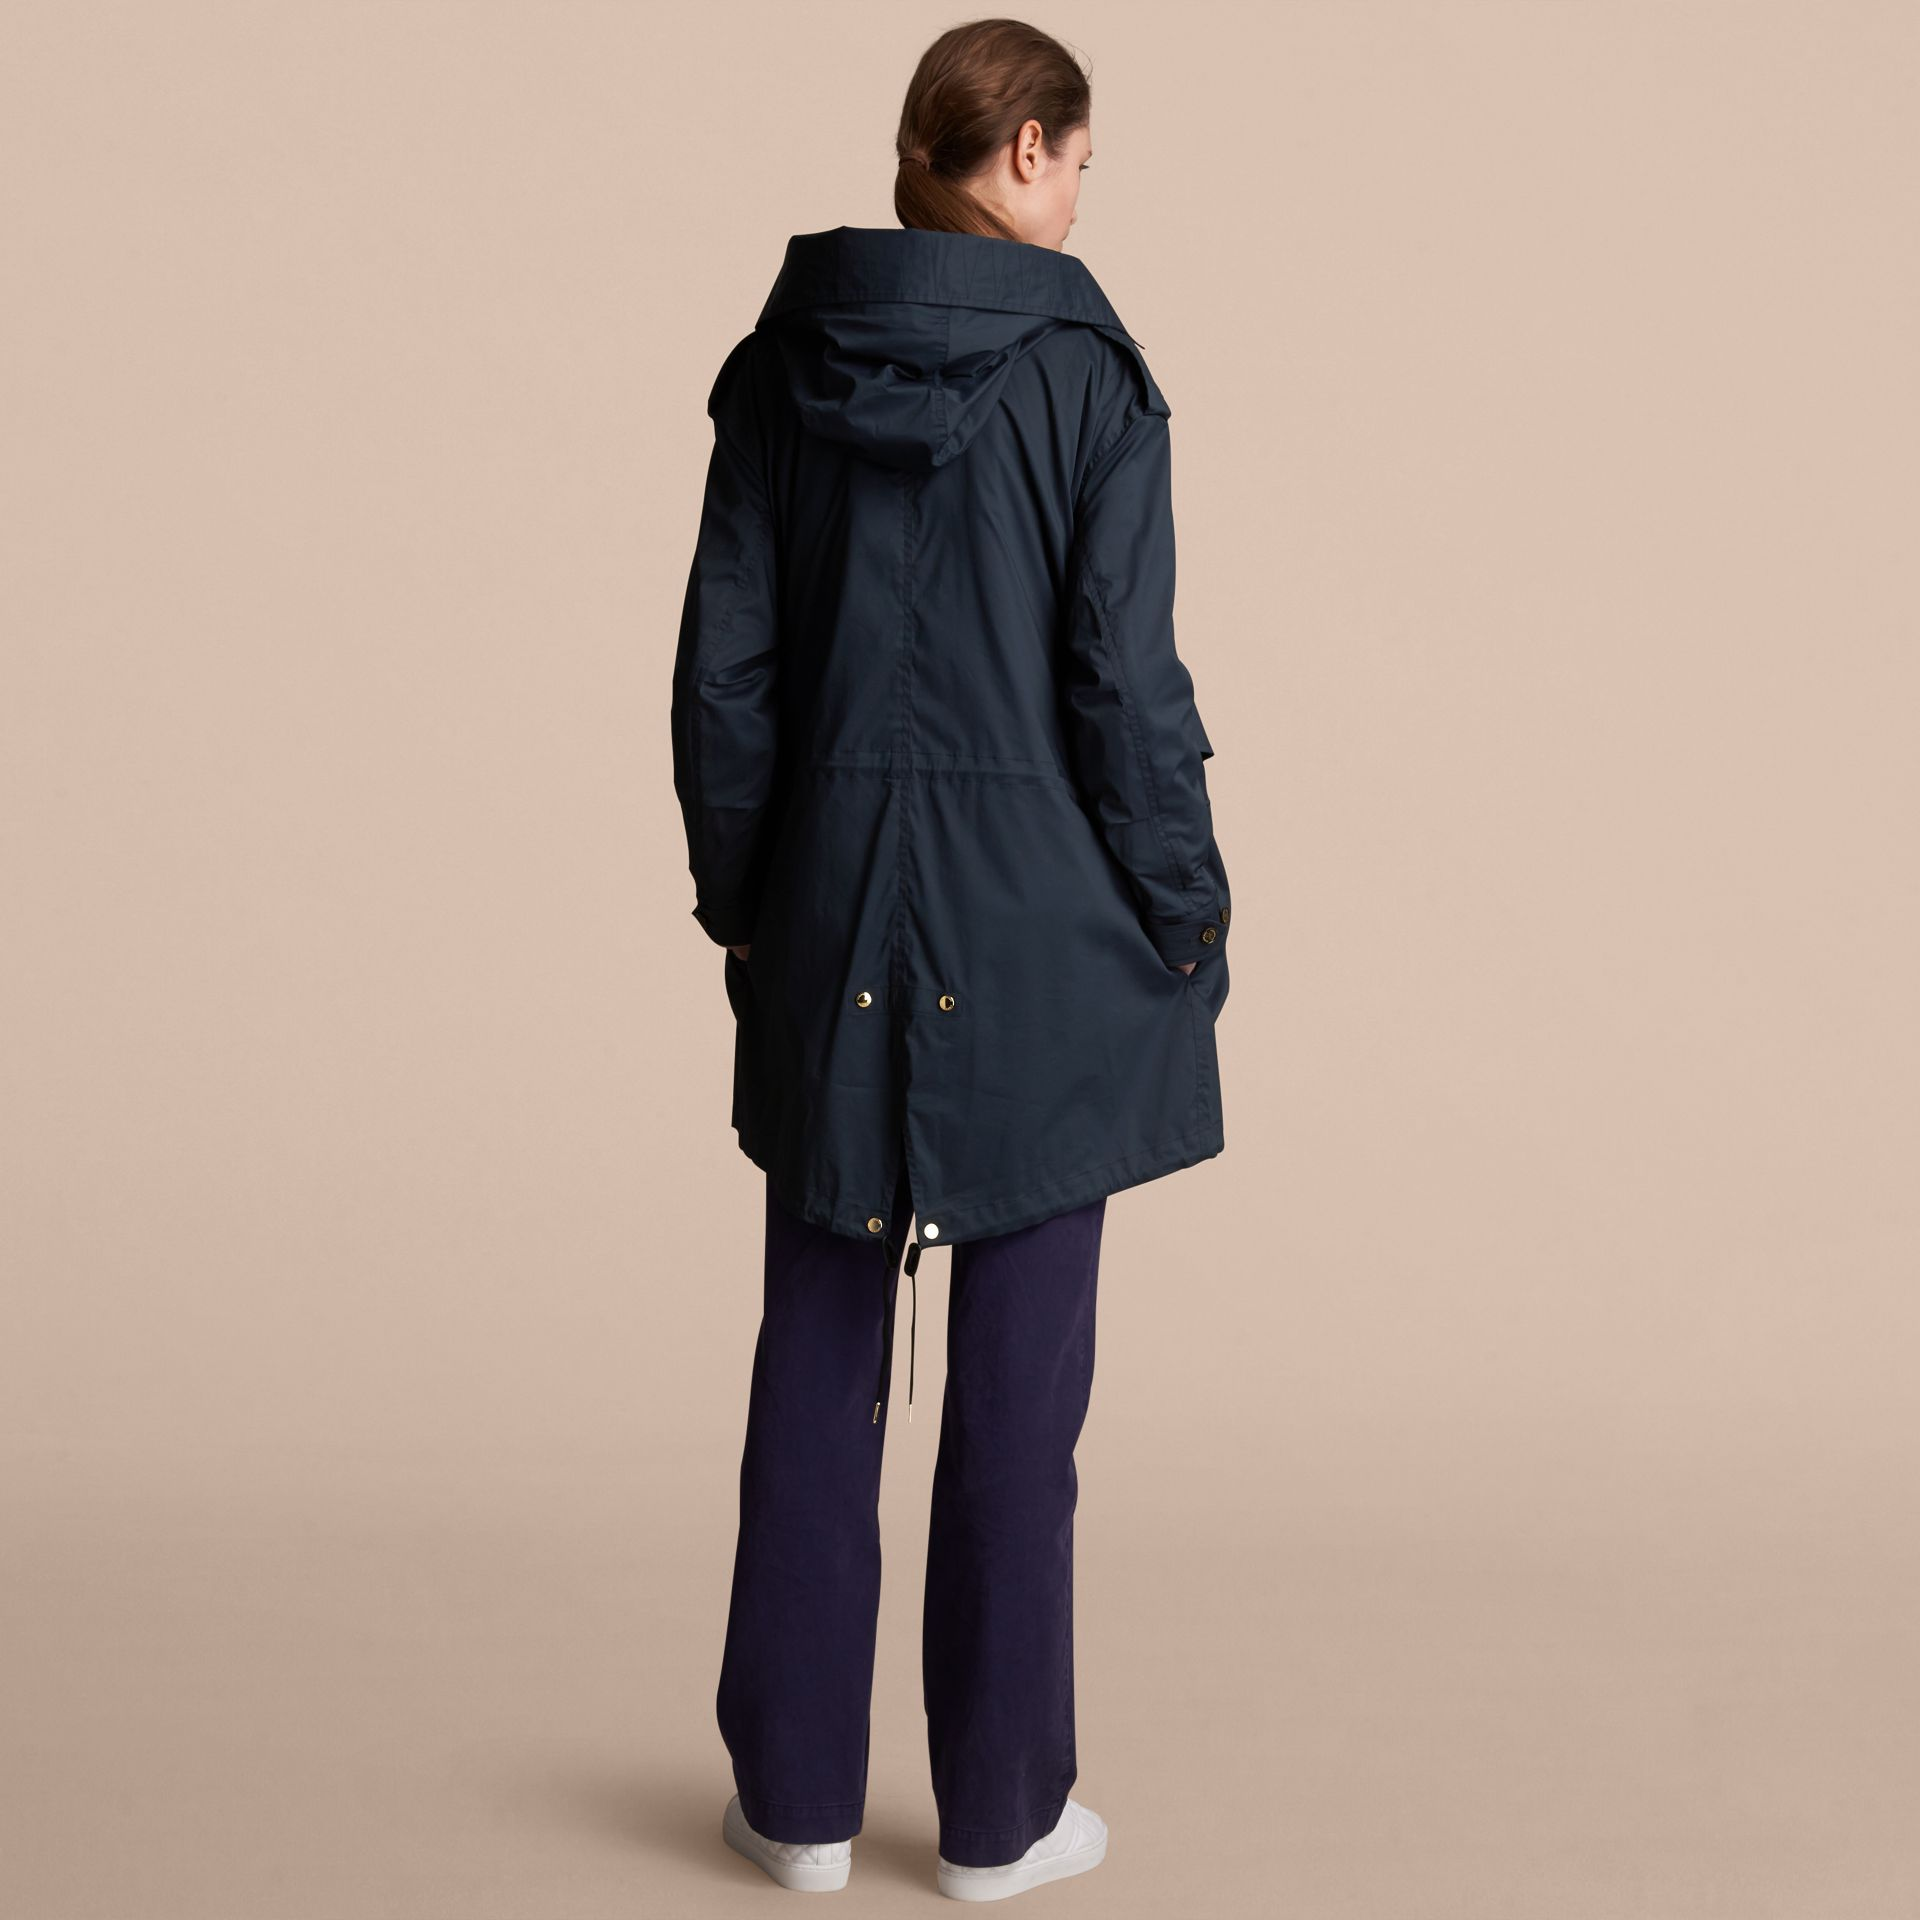 Hooded Water-resistant Parka in Navy - Women | Burberry - gallery image 2